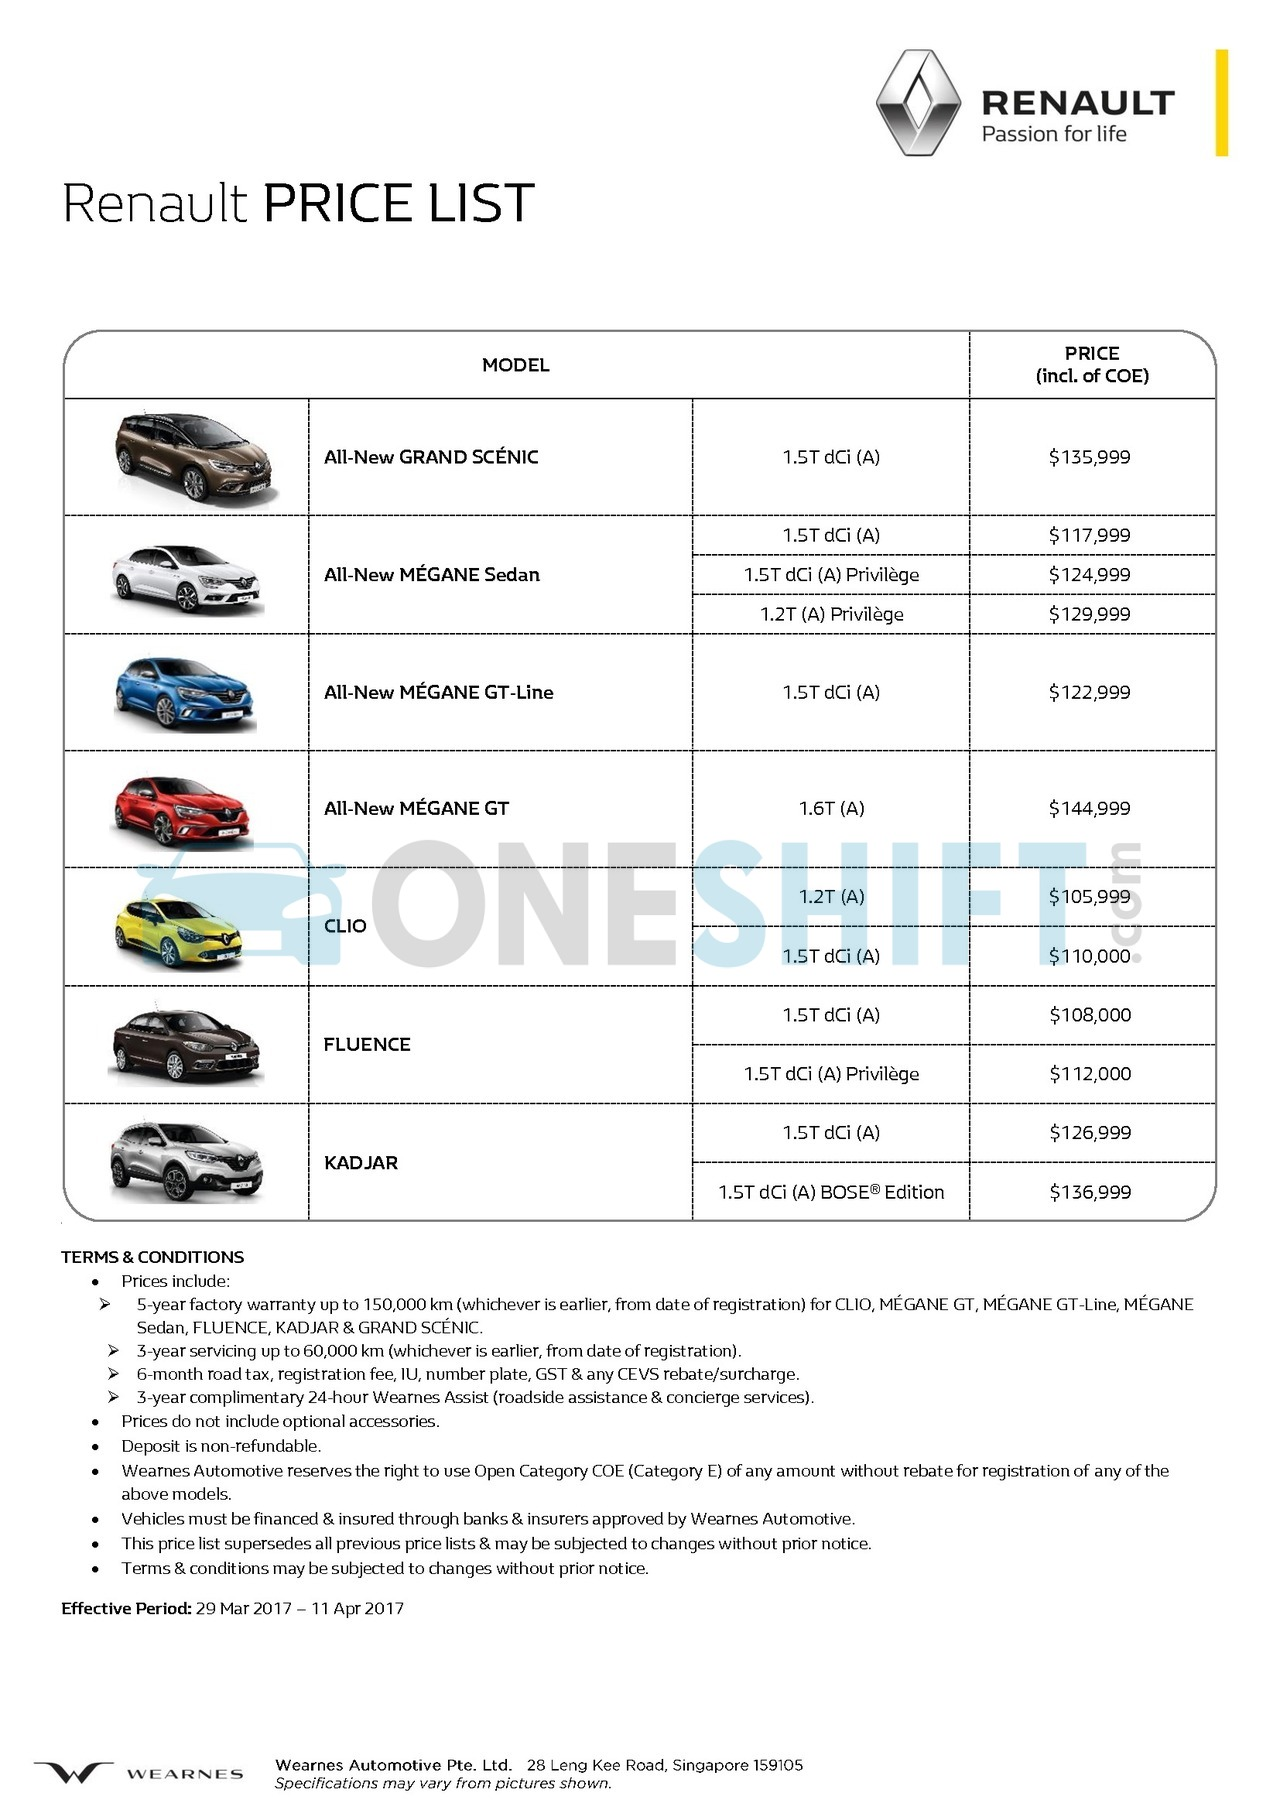 renault Price List 4-30-2017 Page 1